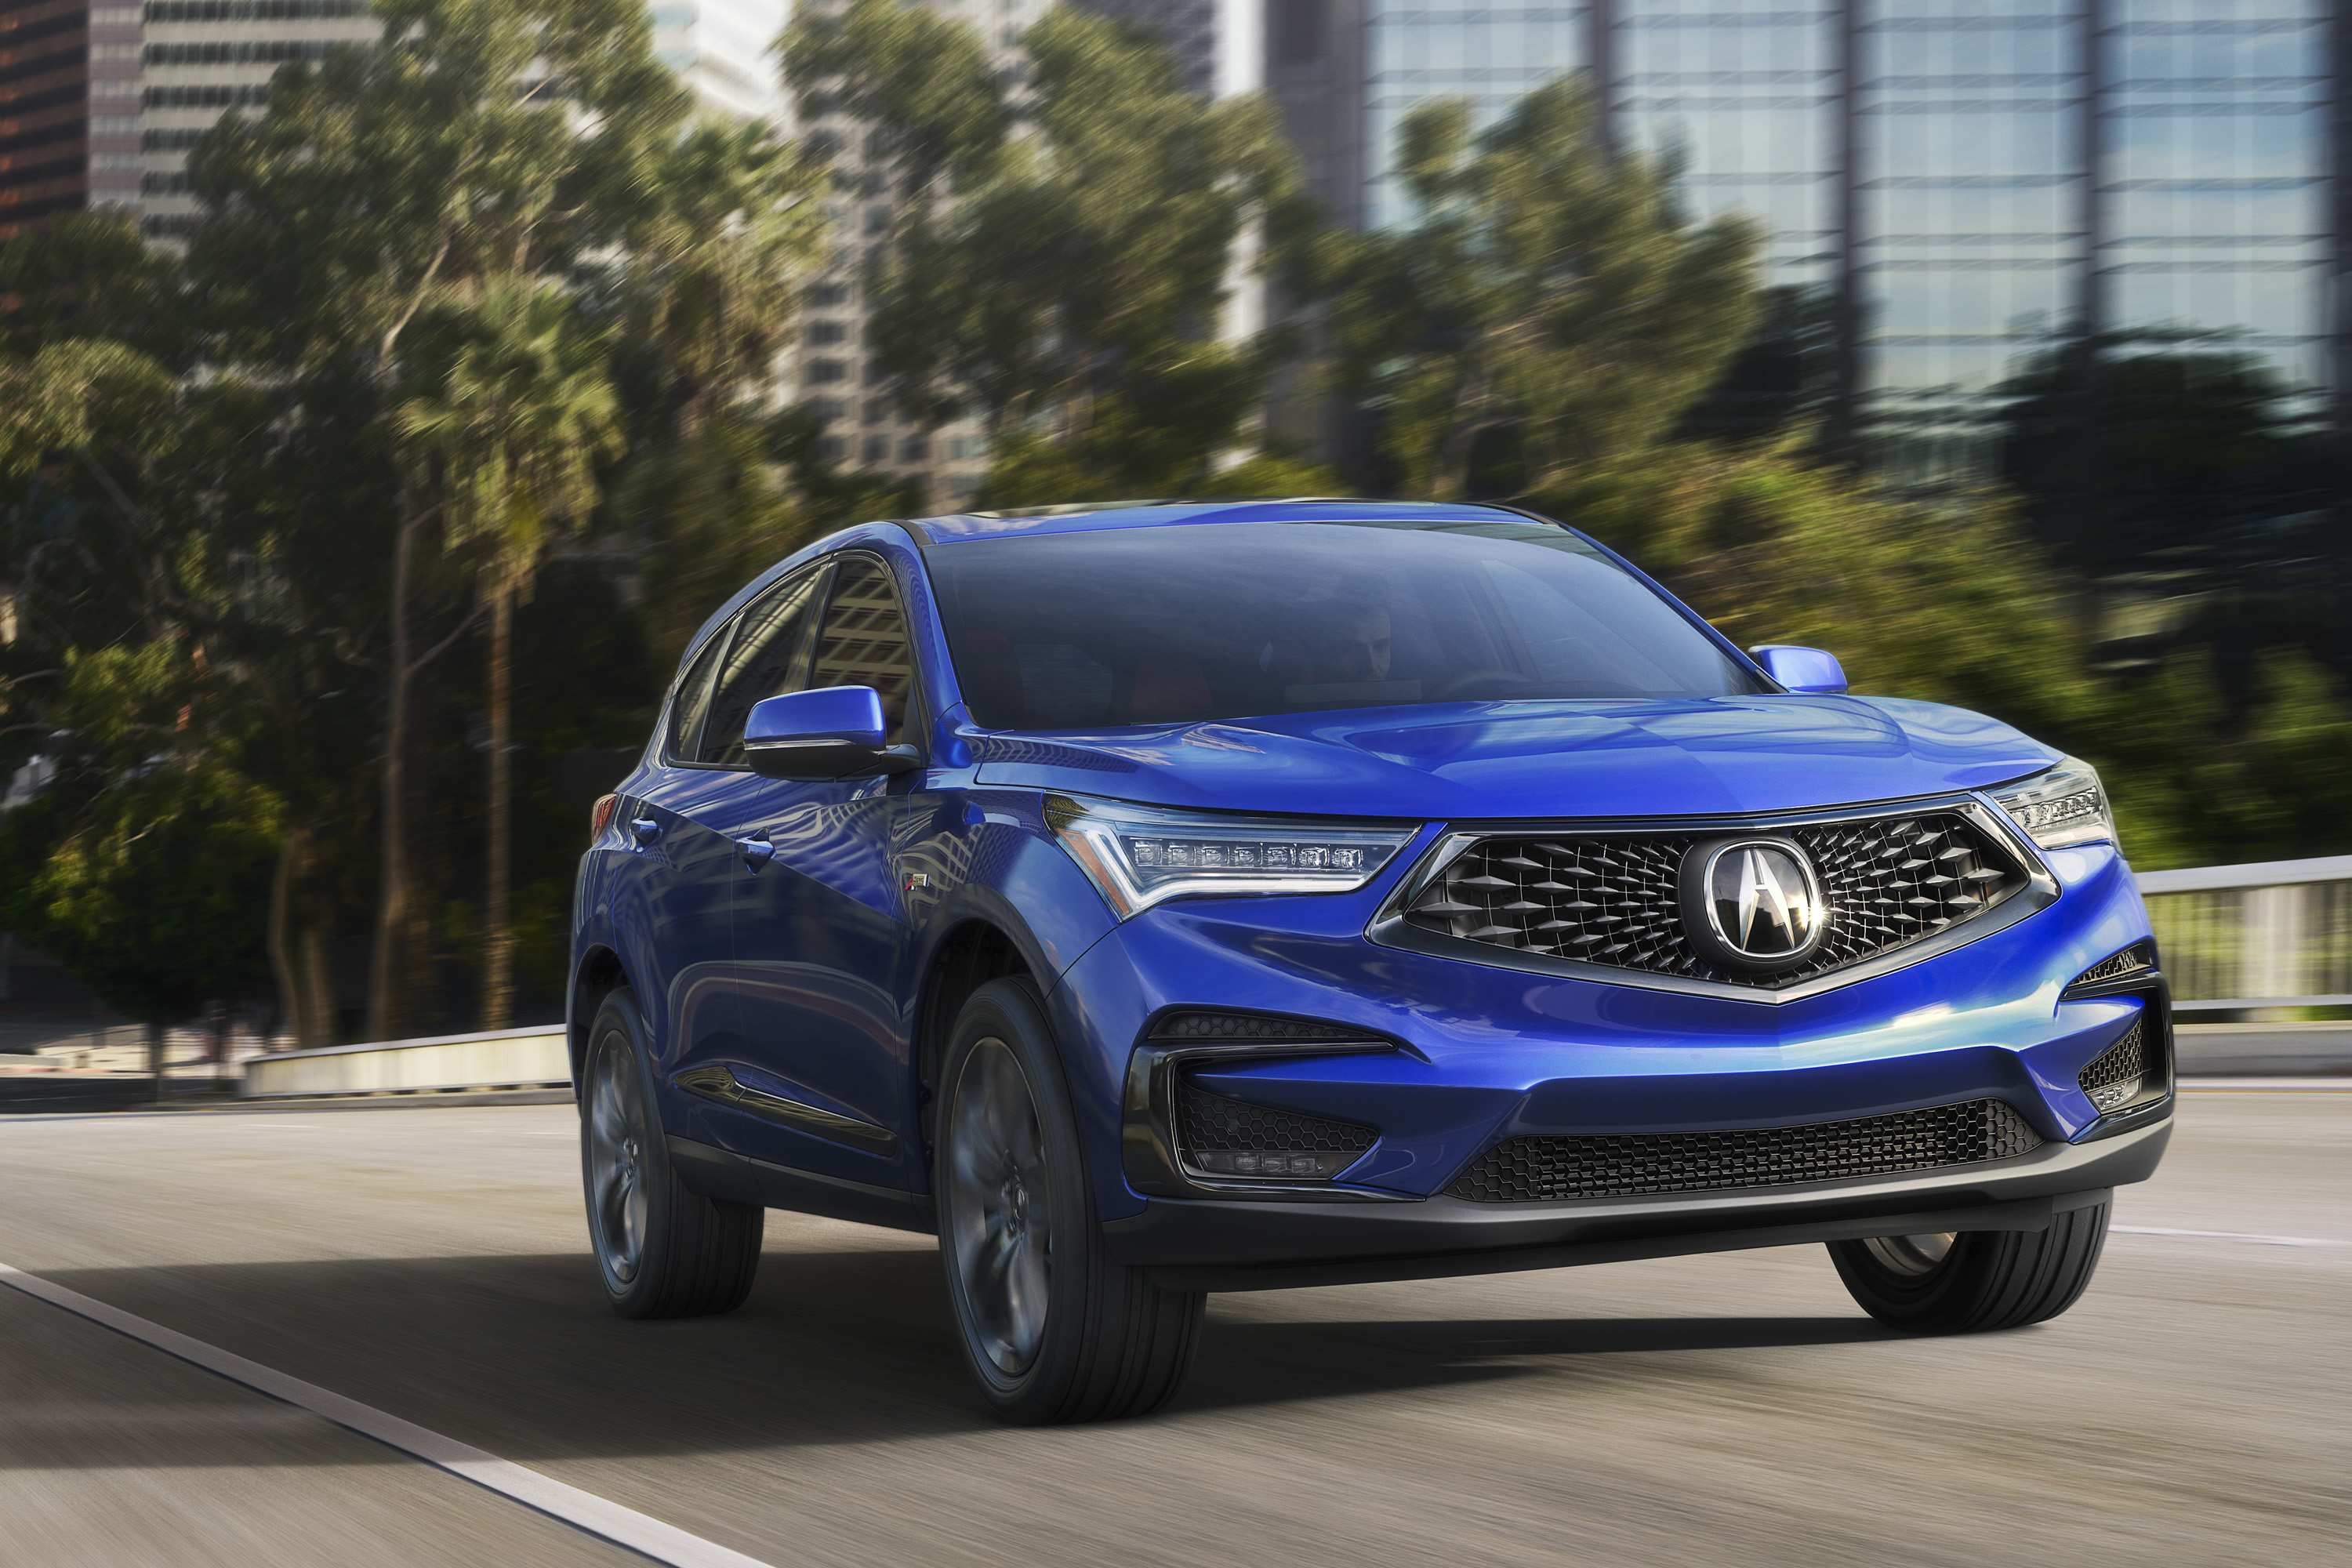 25 All New Best When Will Acura 2019 Mdx Be Available Performance Exterior for Best When Will Acura 2019 Mdx Be Available Performance